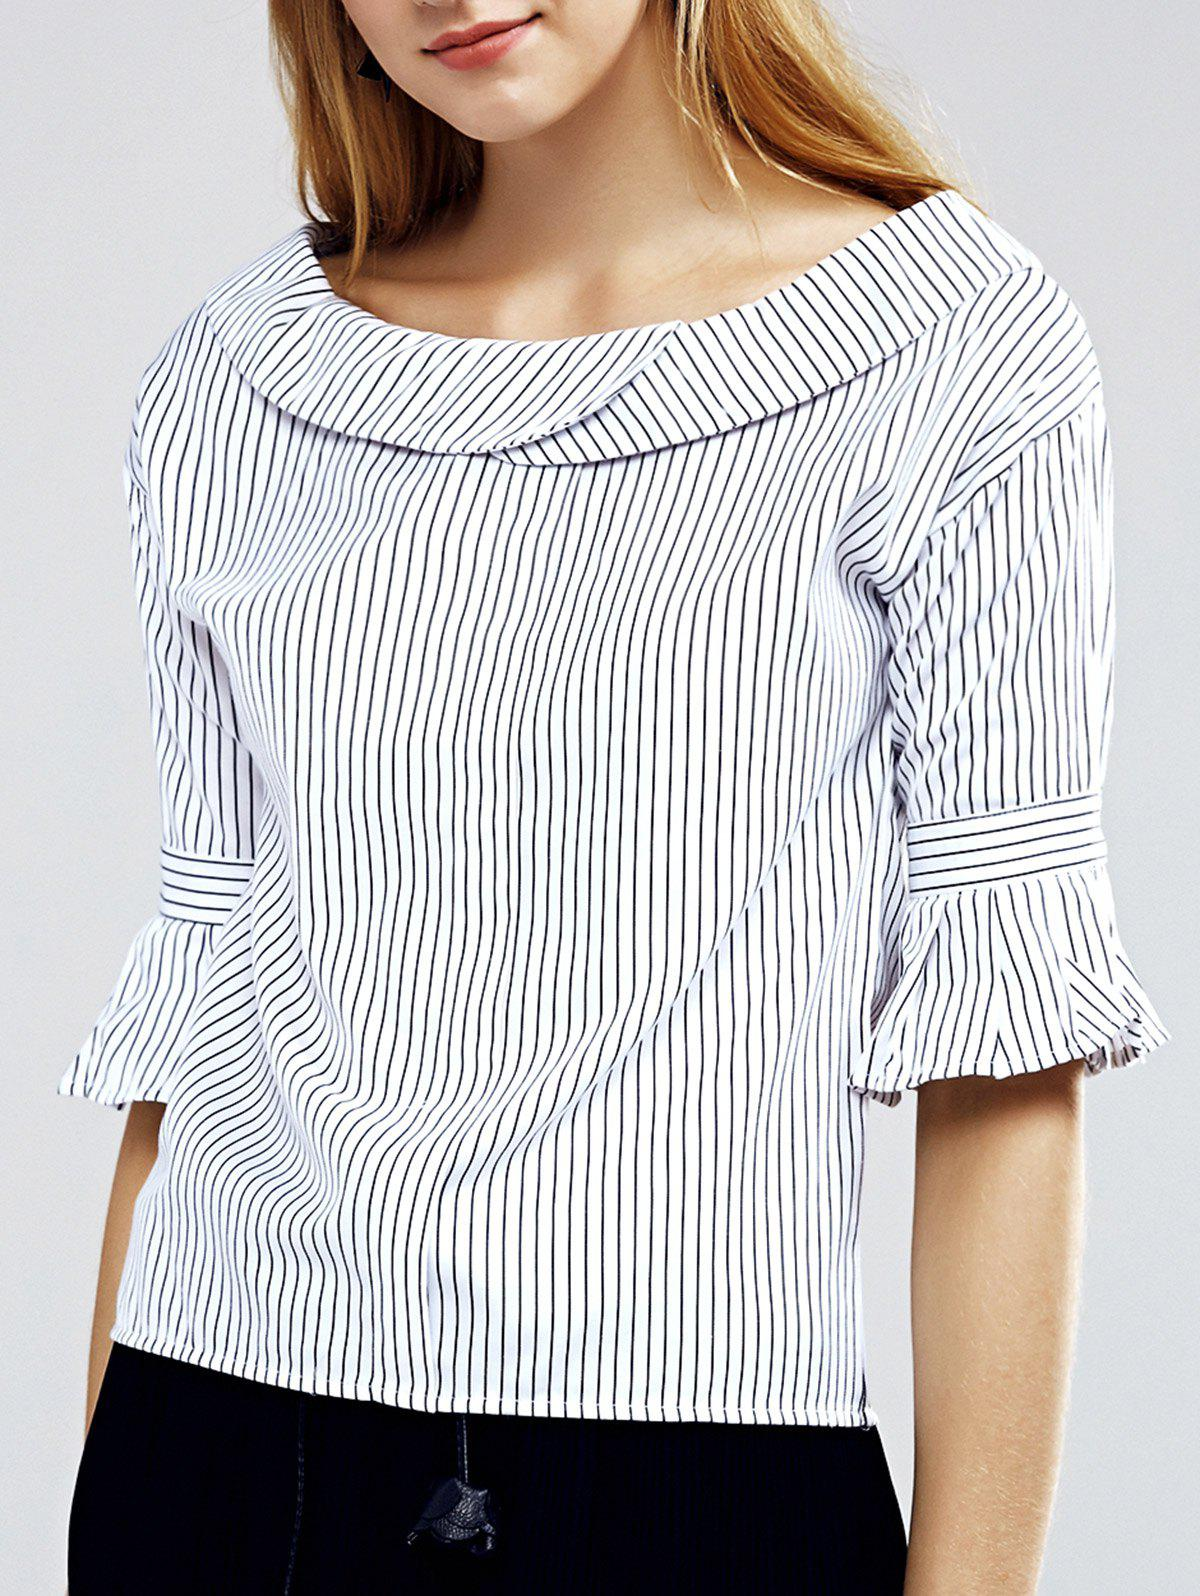 Elegant Women's Flare Sleeve Striped Blouse - STRIPE L